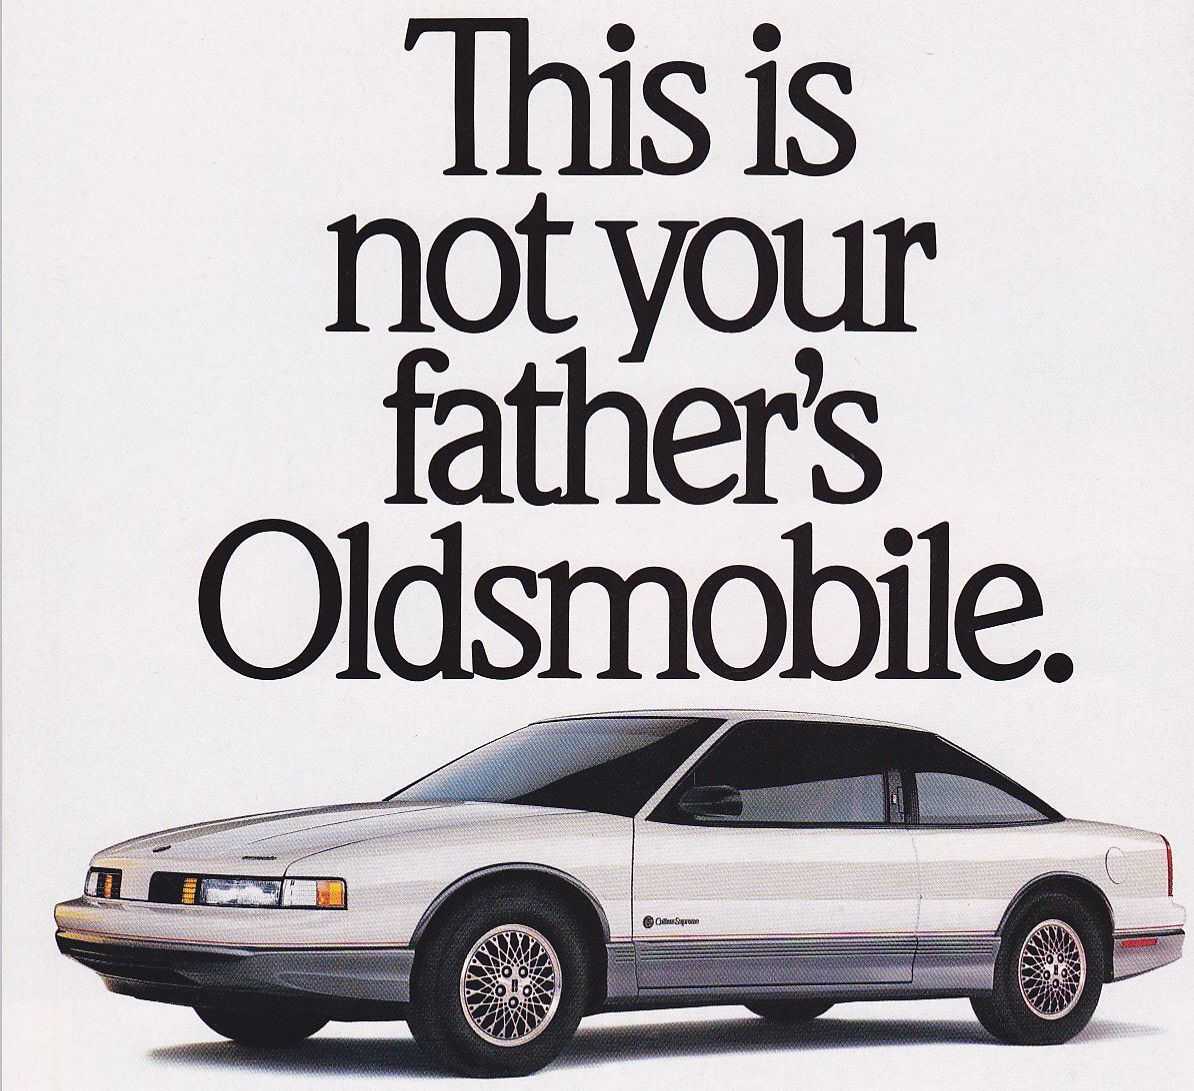 1989 Oldsmobile Cutlass Supreme advert